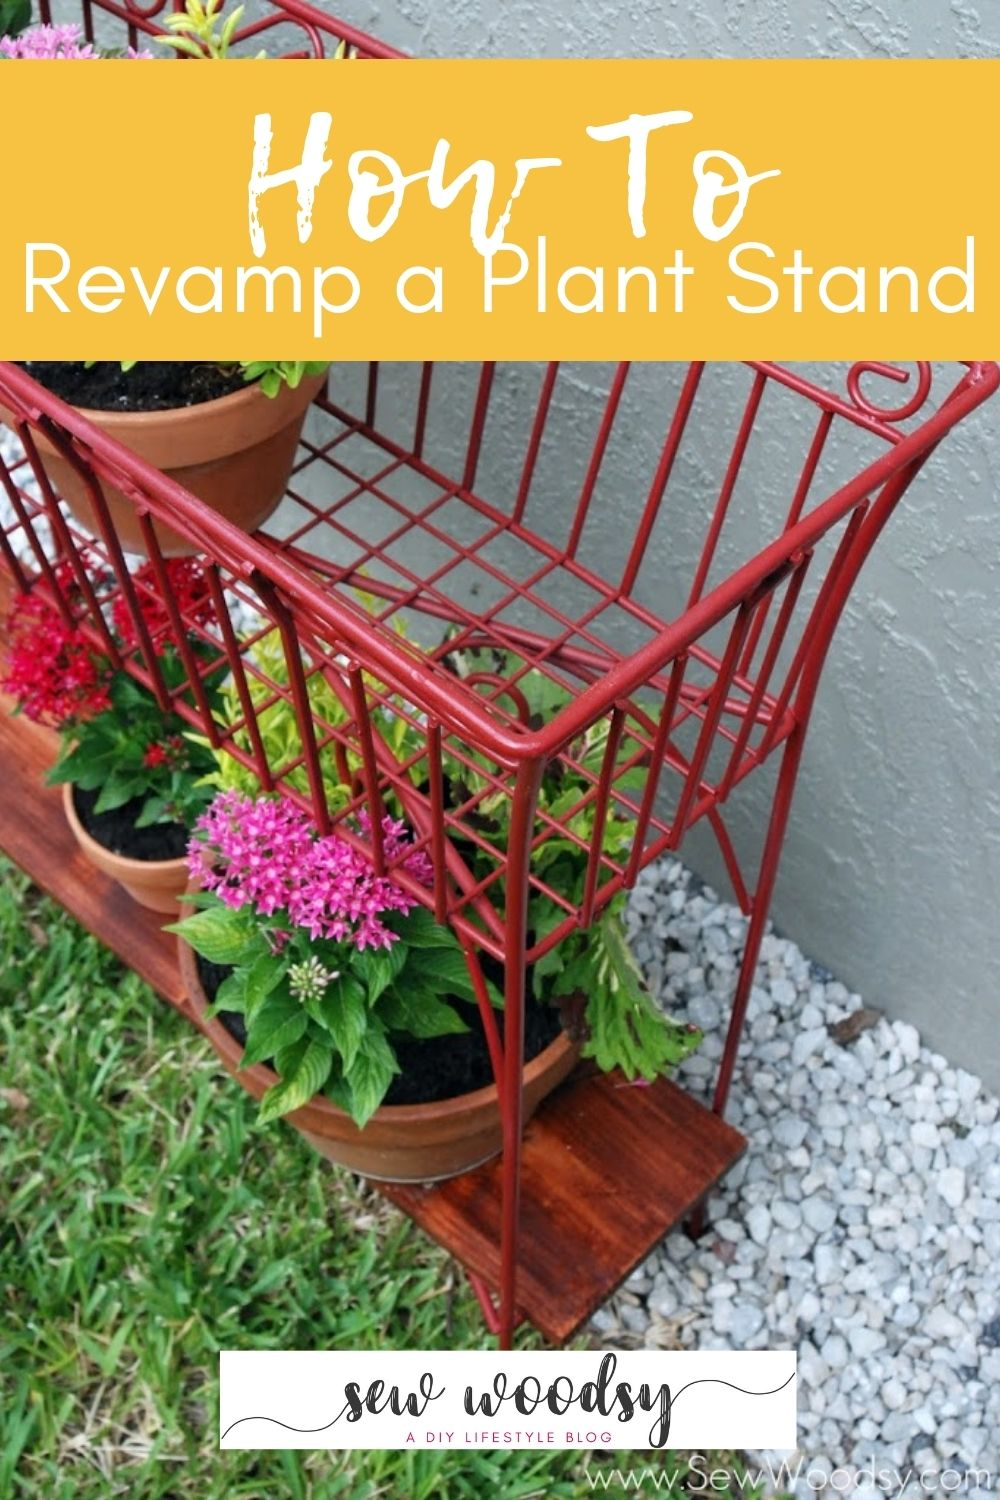 Close up of a red wire plant stand with text on image for Pinterest.